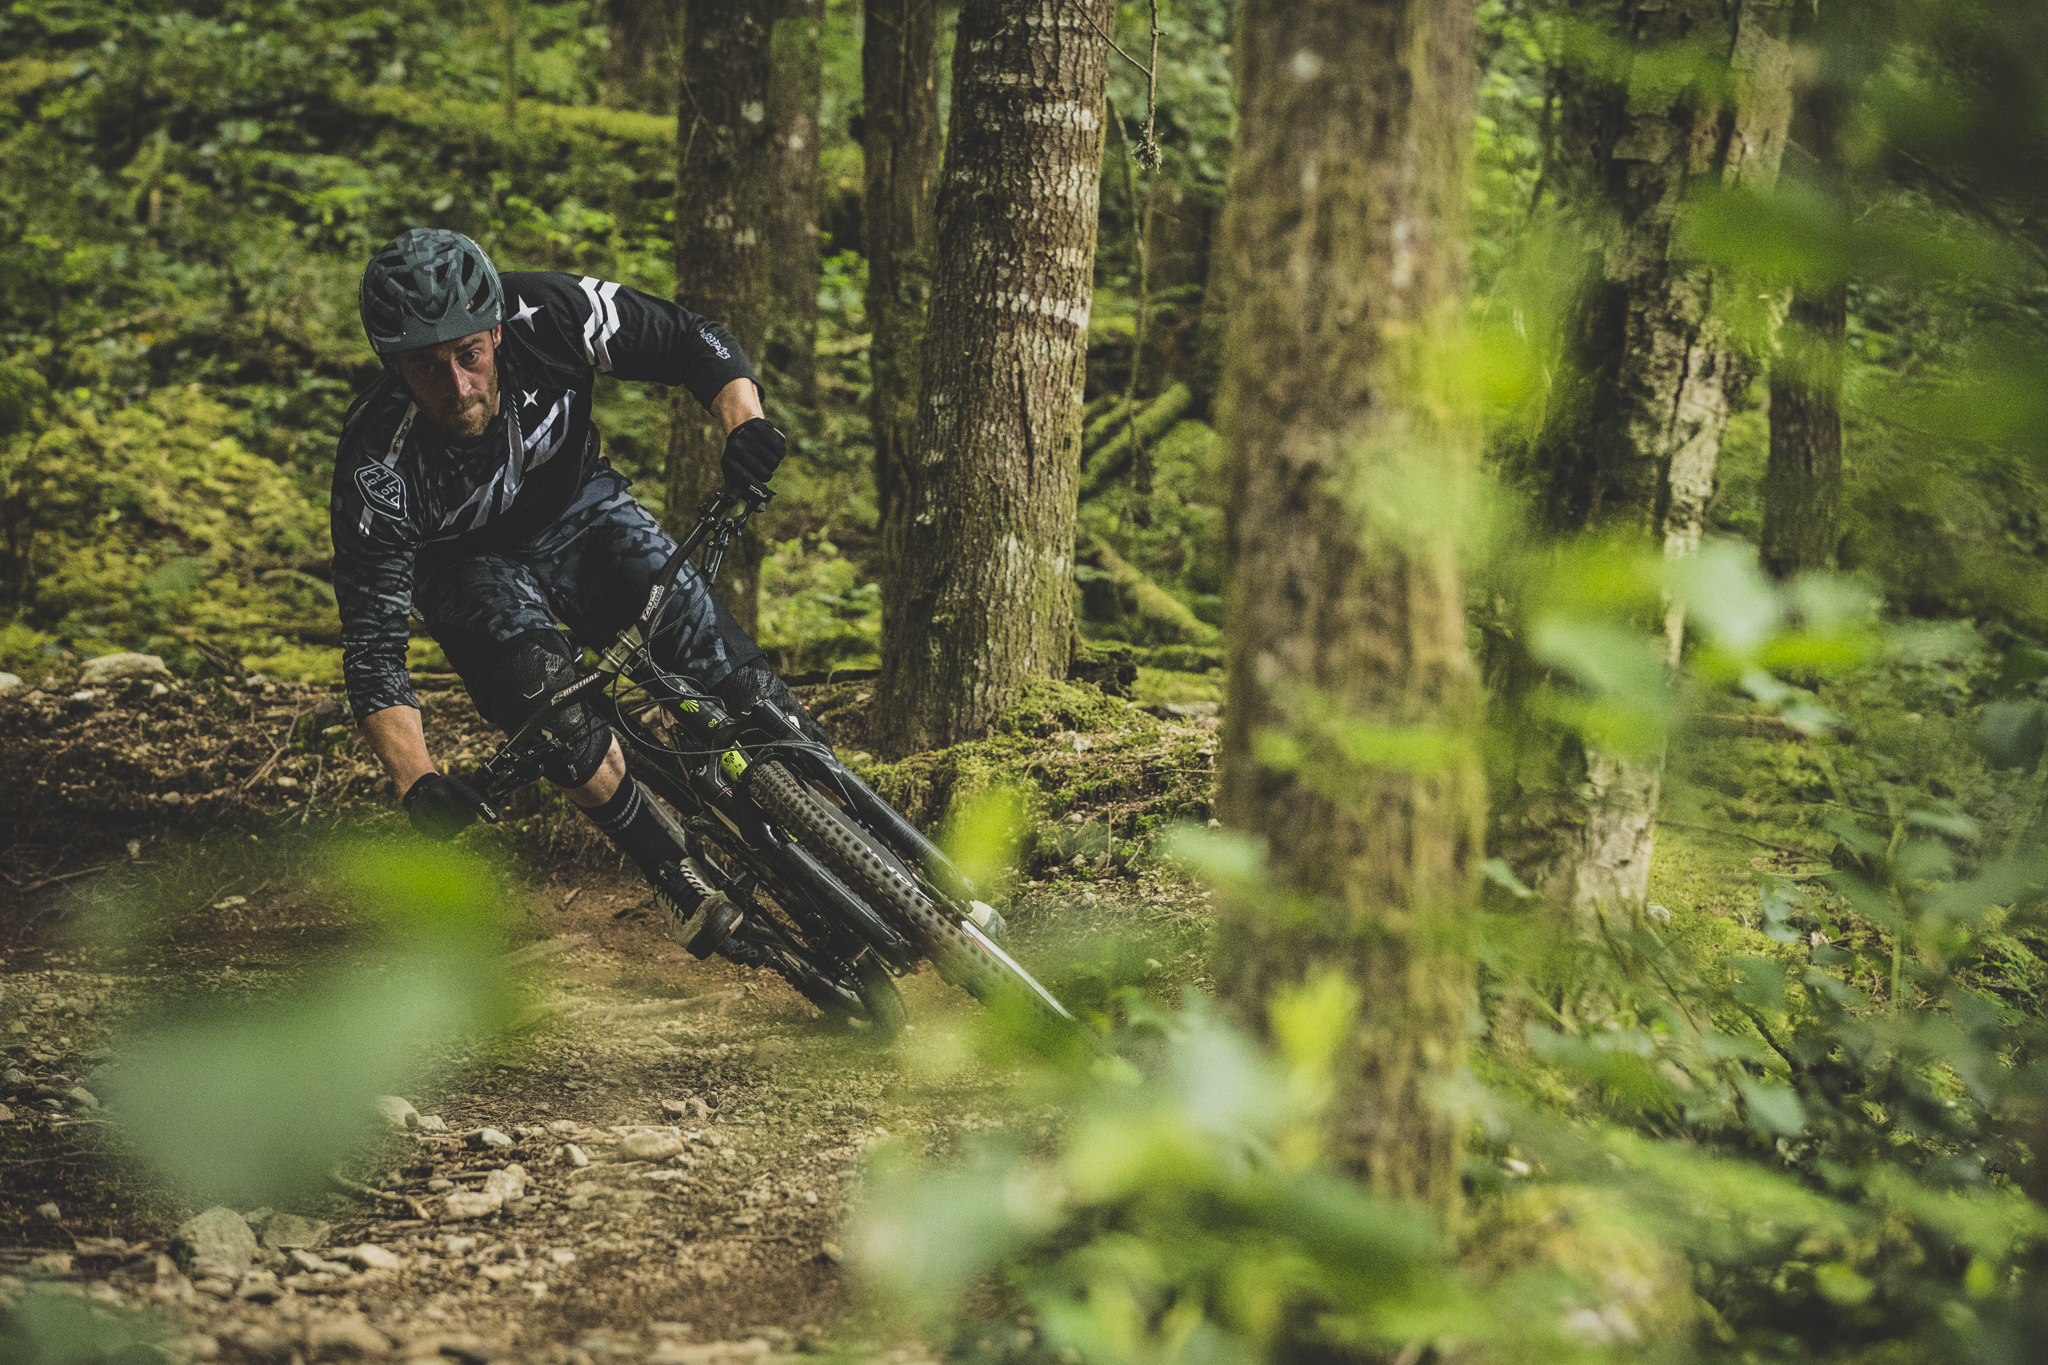 Kicking things off on a big ride in Squamish.